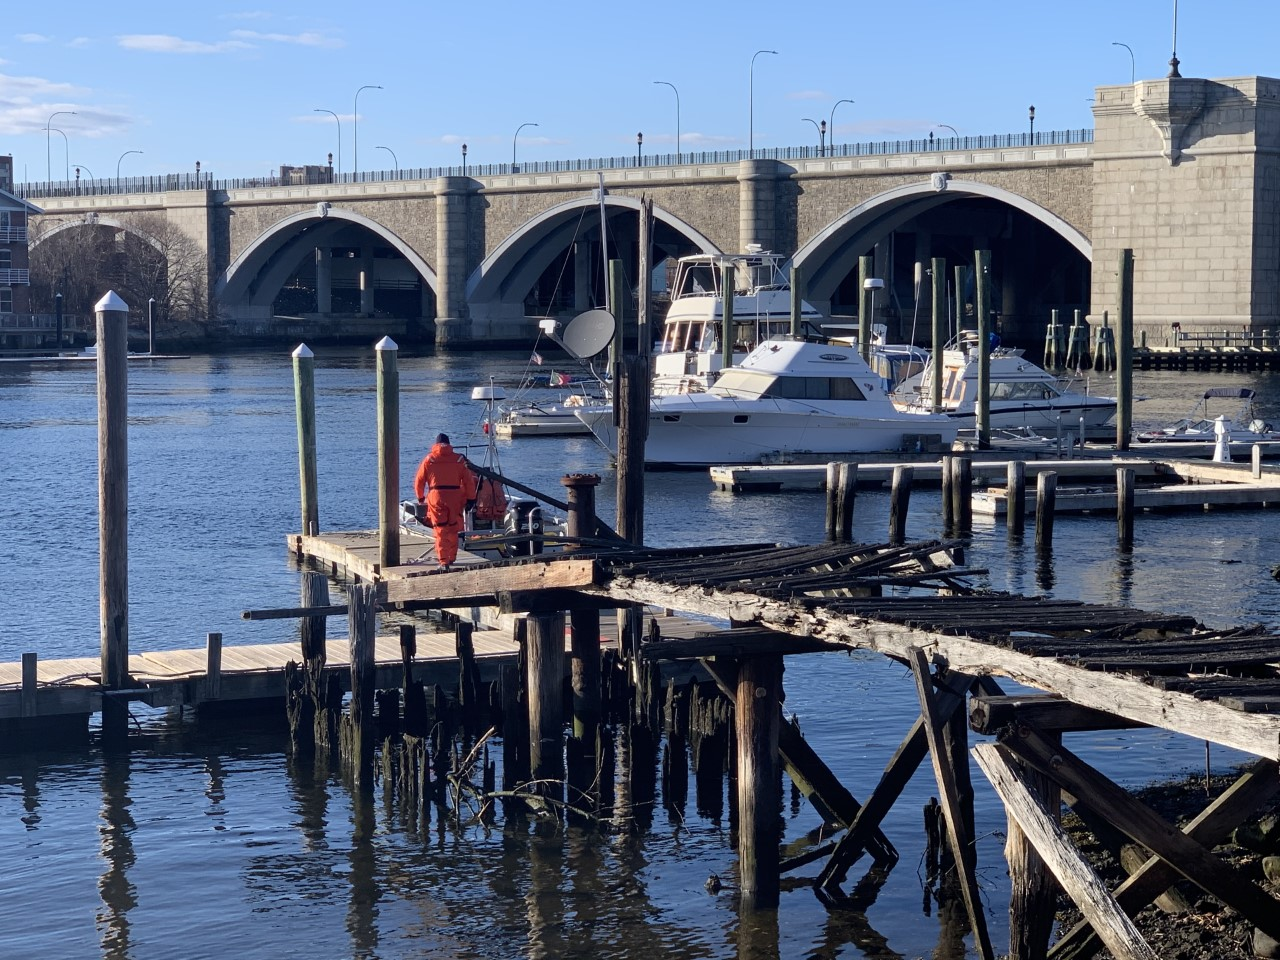 Water search underway for man who fell off docks near East Providence Yacht Club | ABC6